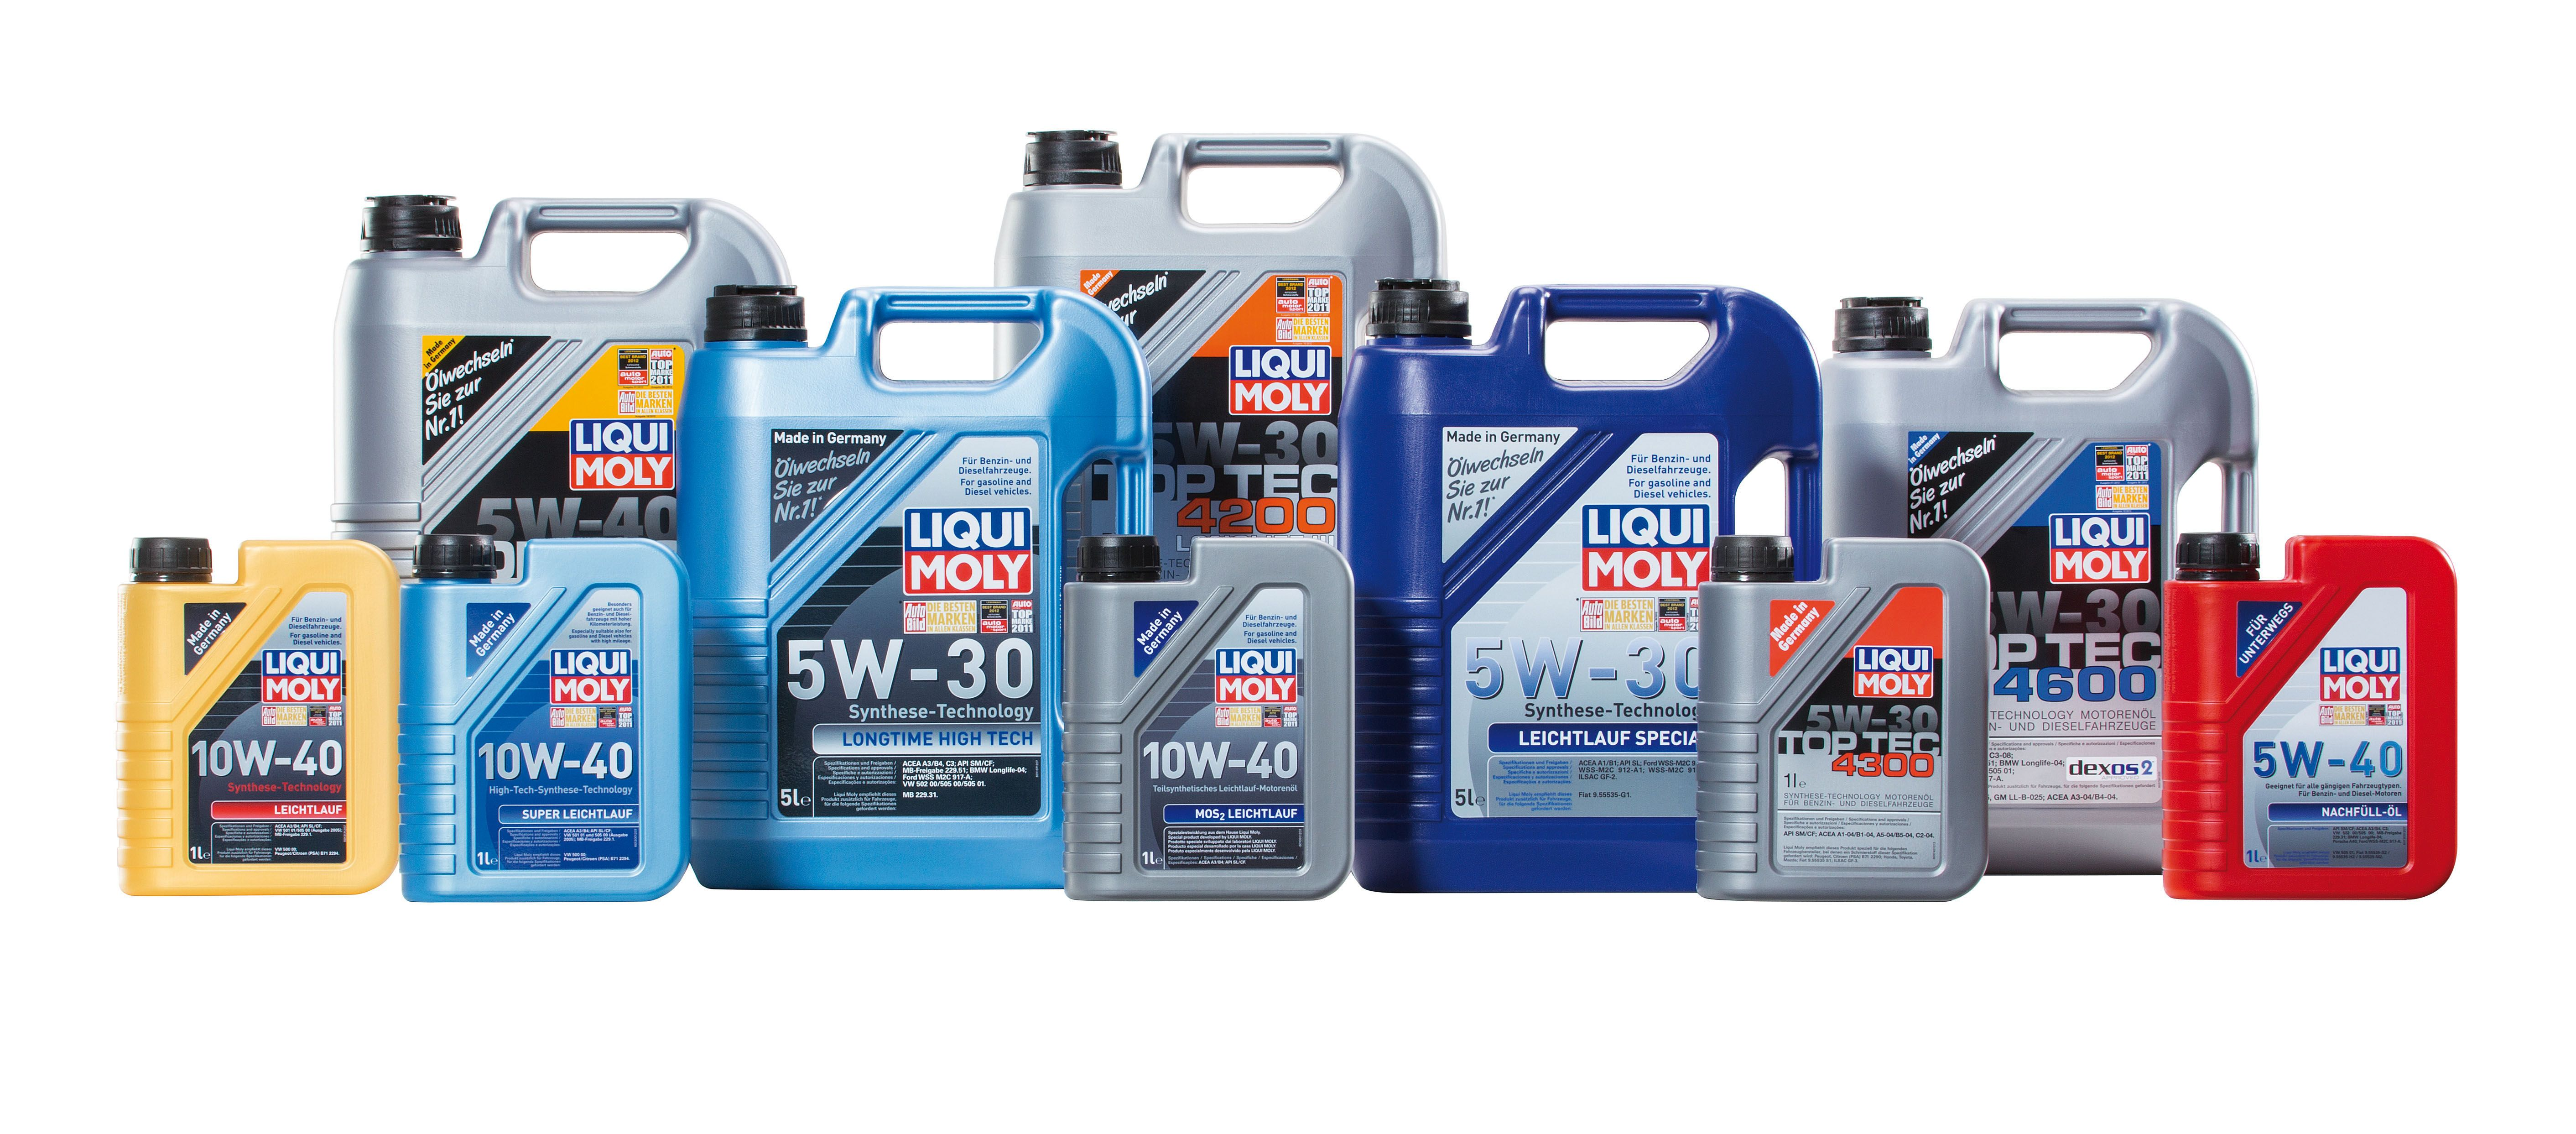 new liqui moly german quality engine oil car parts offers in 2018 pinterest cars car. Black Bedroom Furniture Sets. Home Design Ideas